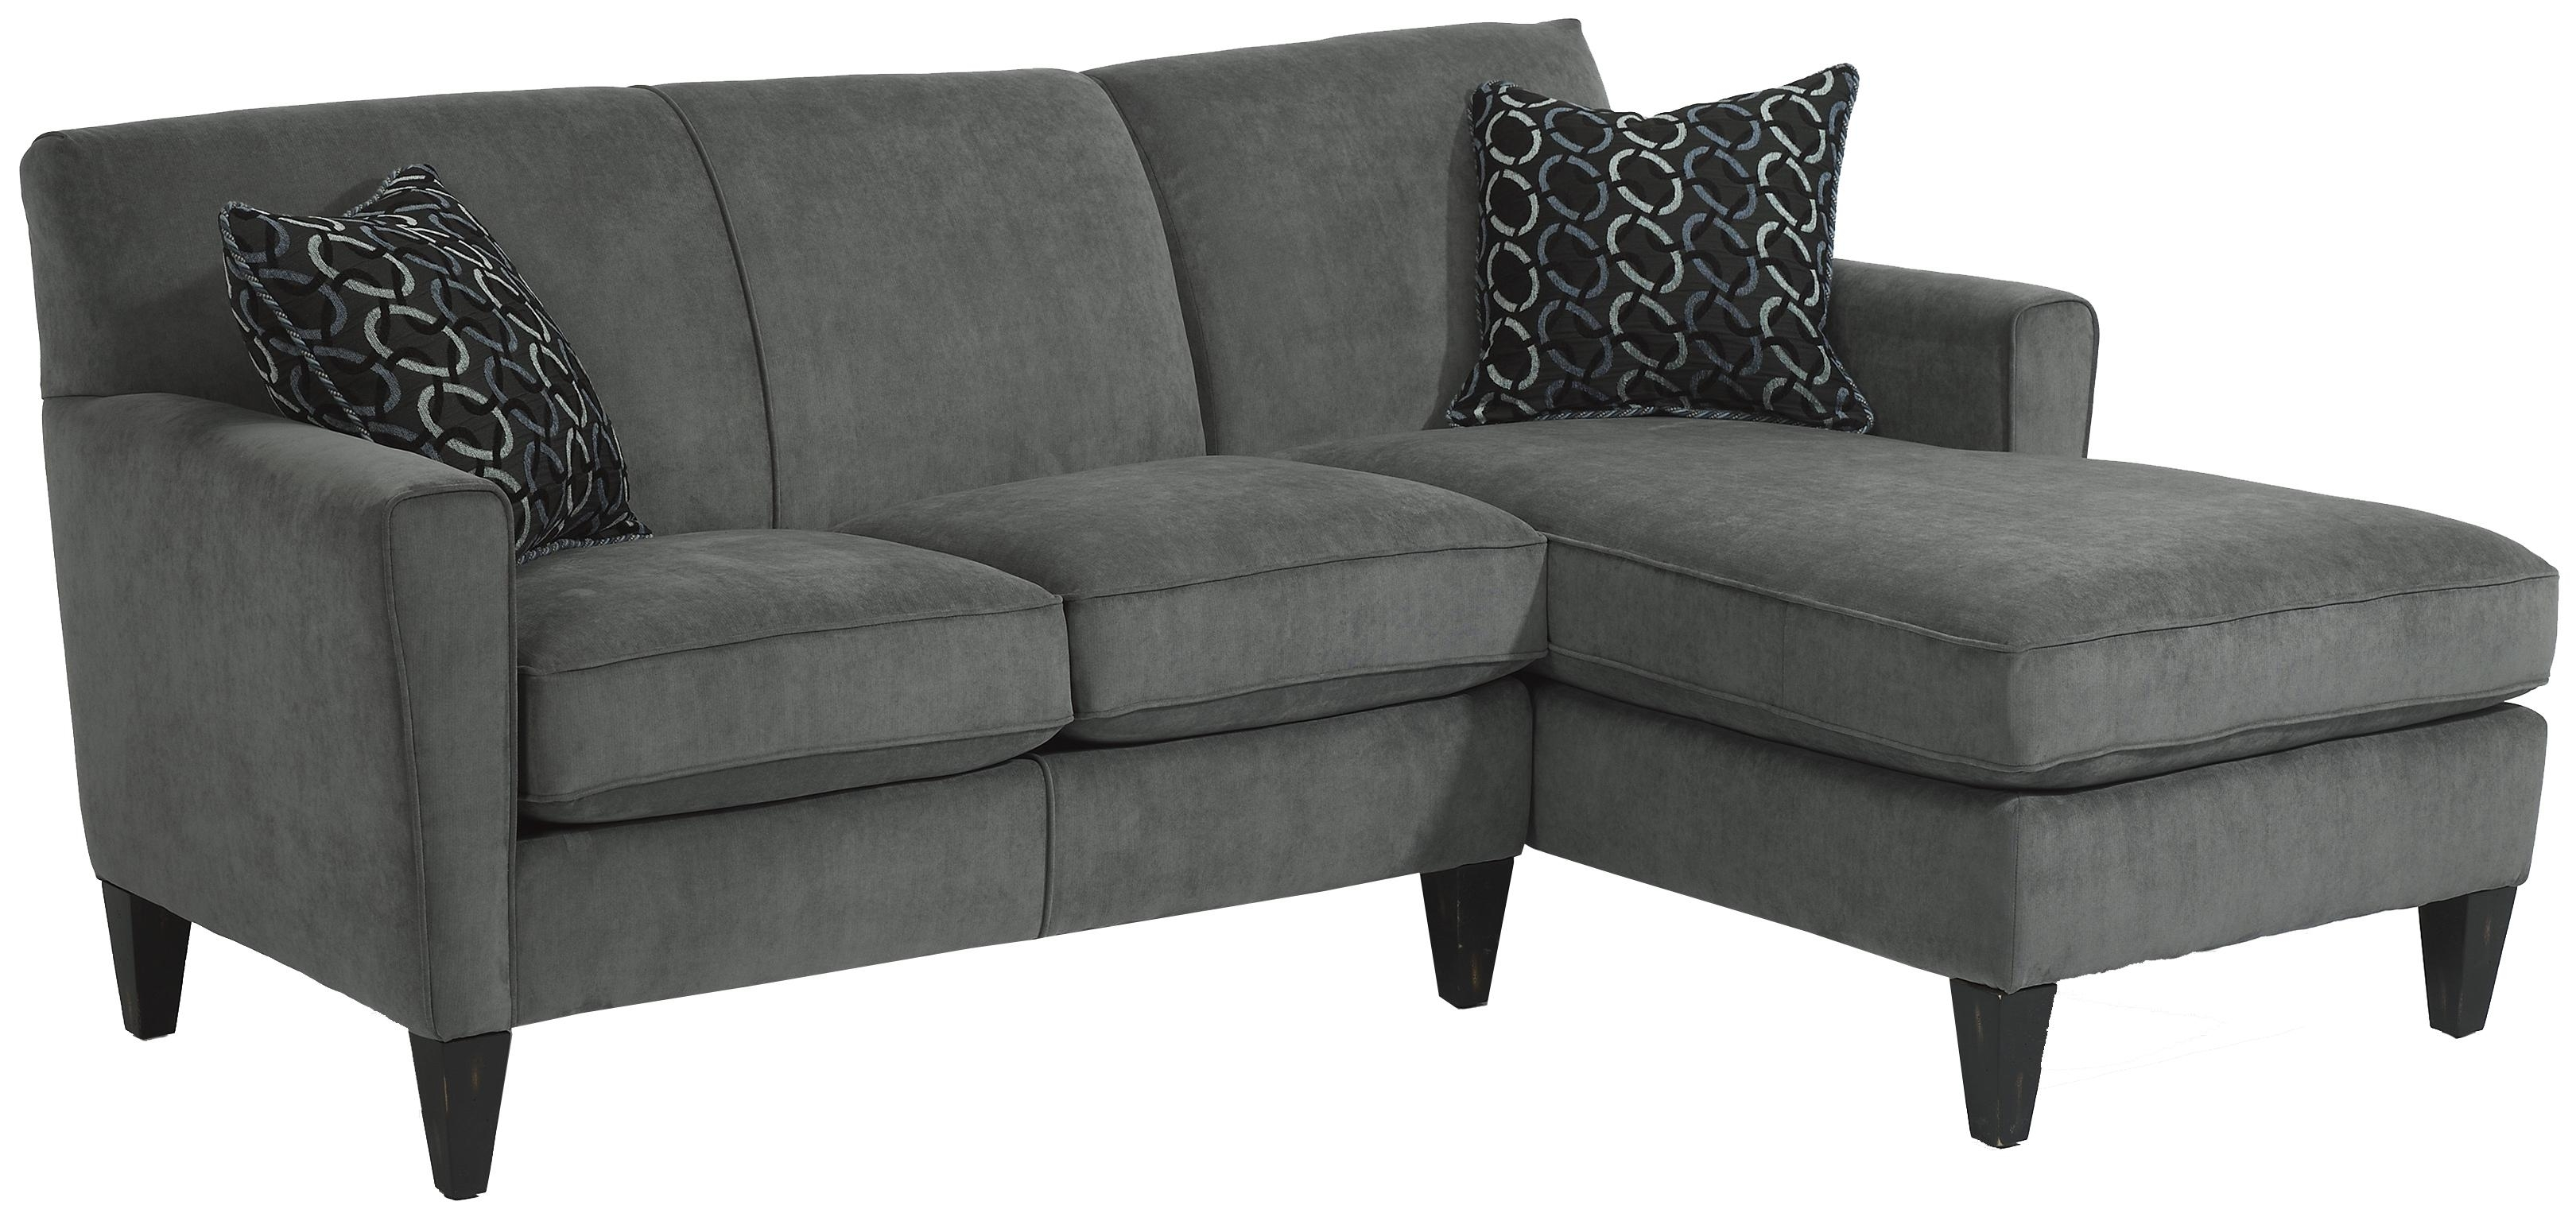 Flexsteel Digby Contemporary Sectional Sofa With Raf Chaise - Ahfa regarding Delano 2 Piece Sectionals With Laf Oversized Chaise (Image 18 of 30)